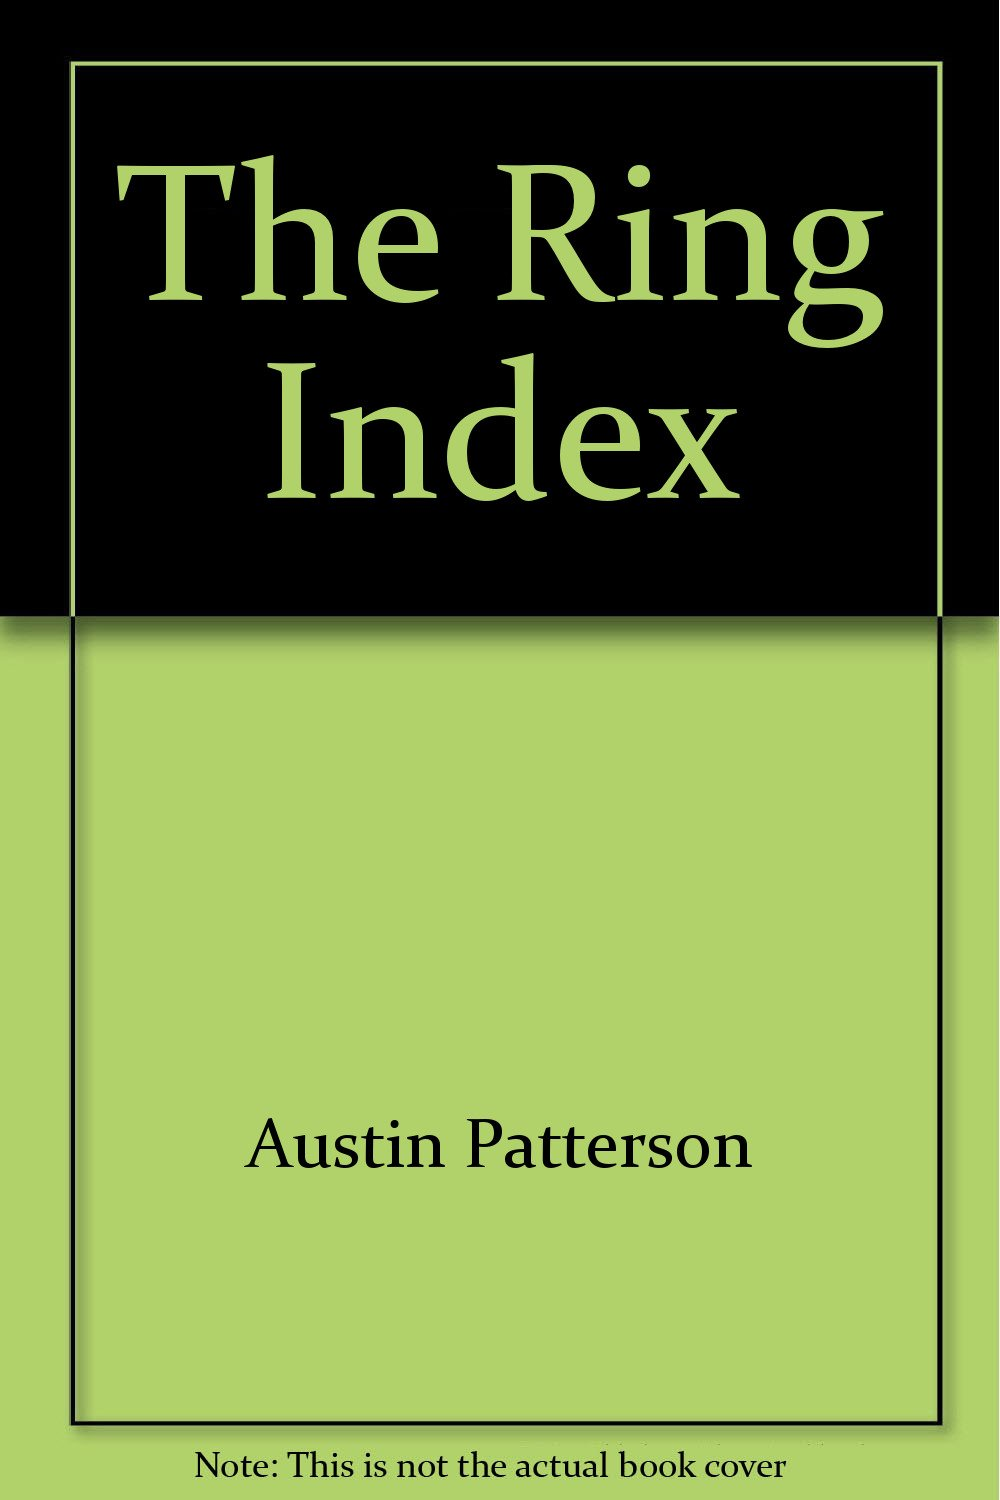 The ring index